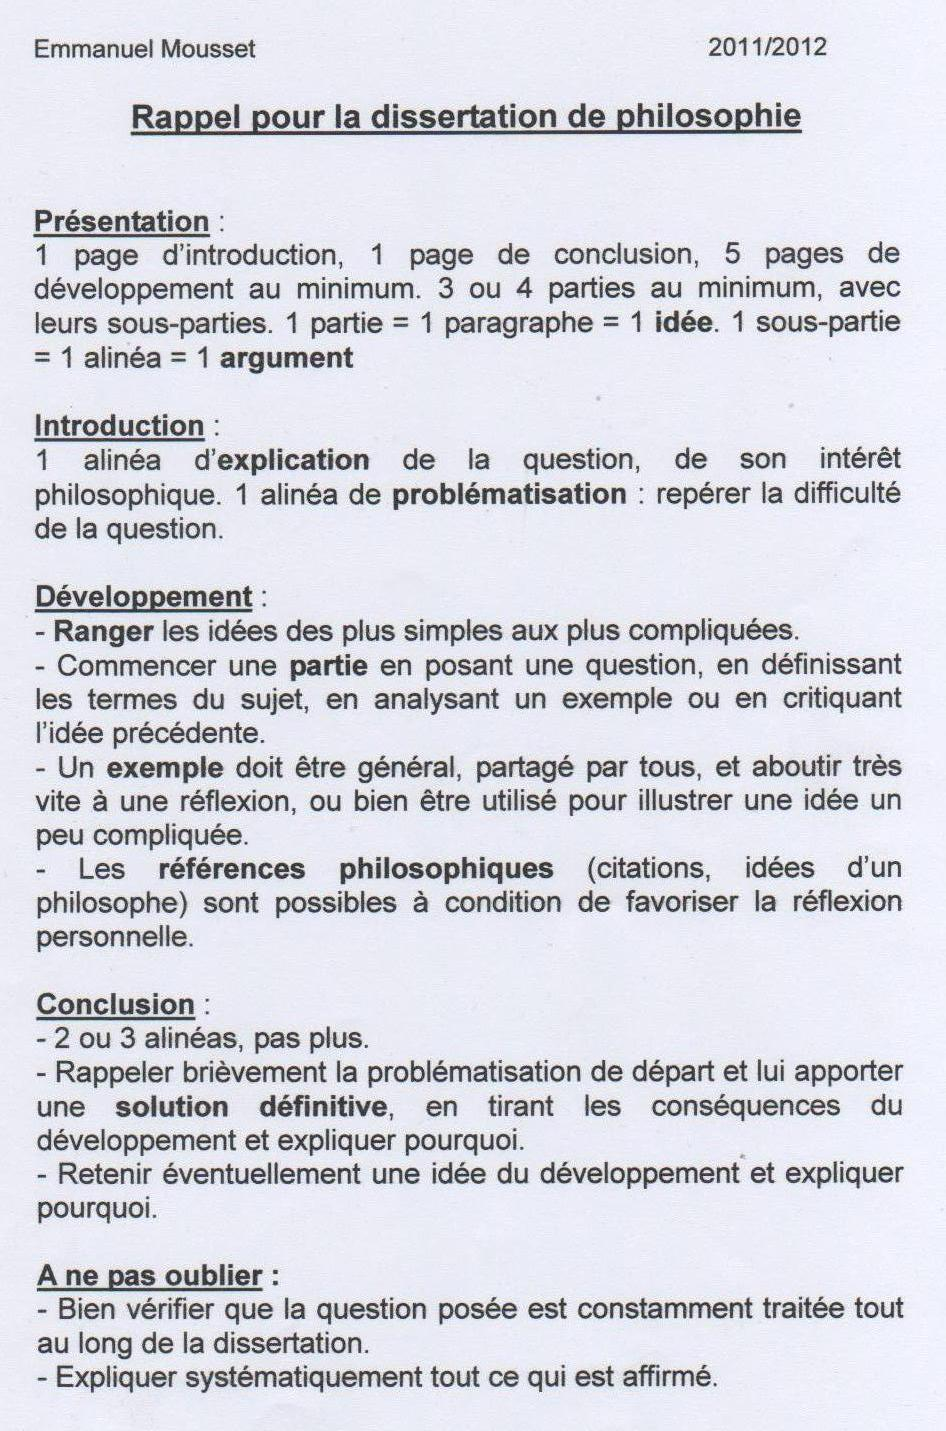 comment conclure une dissertation de philo